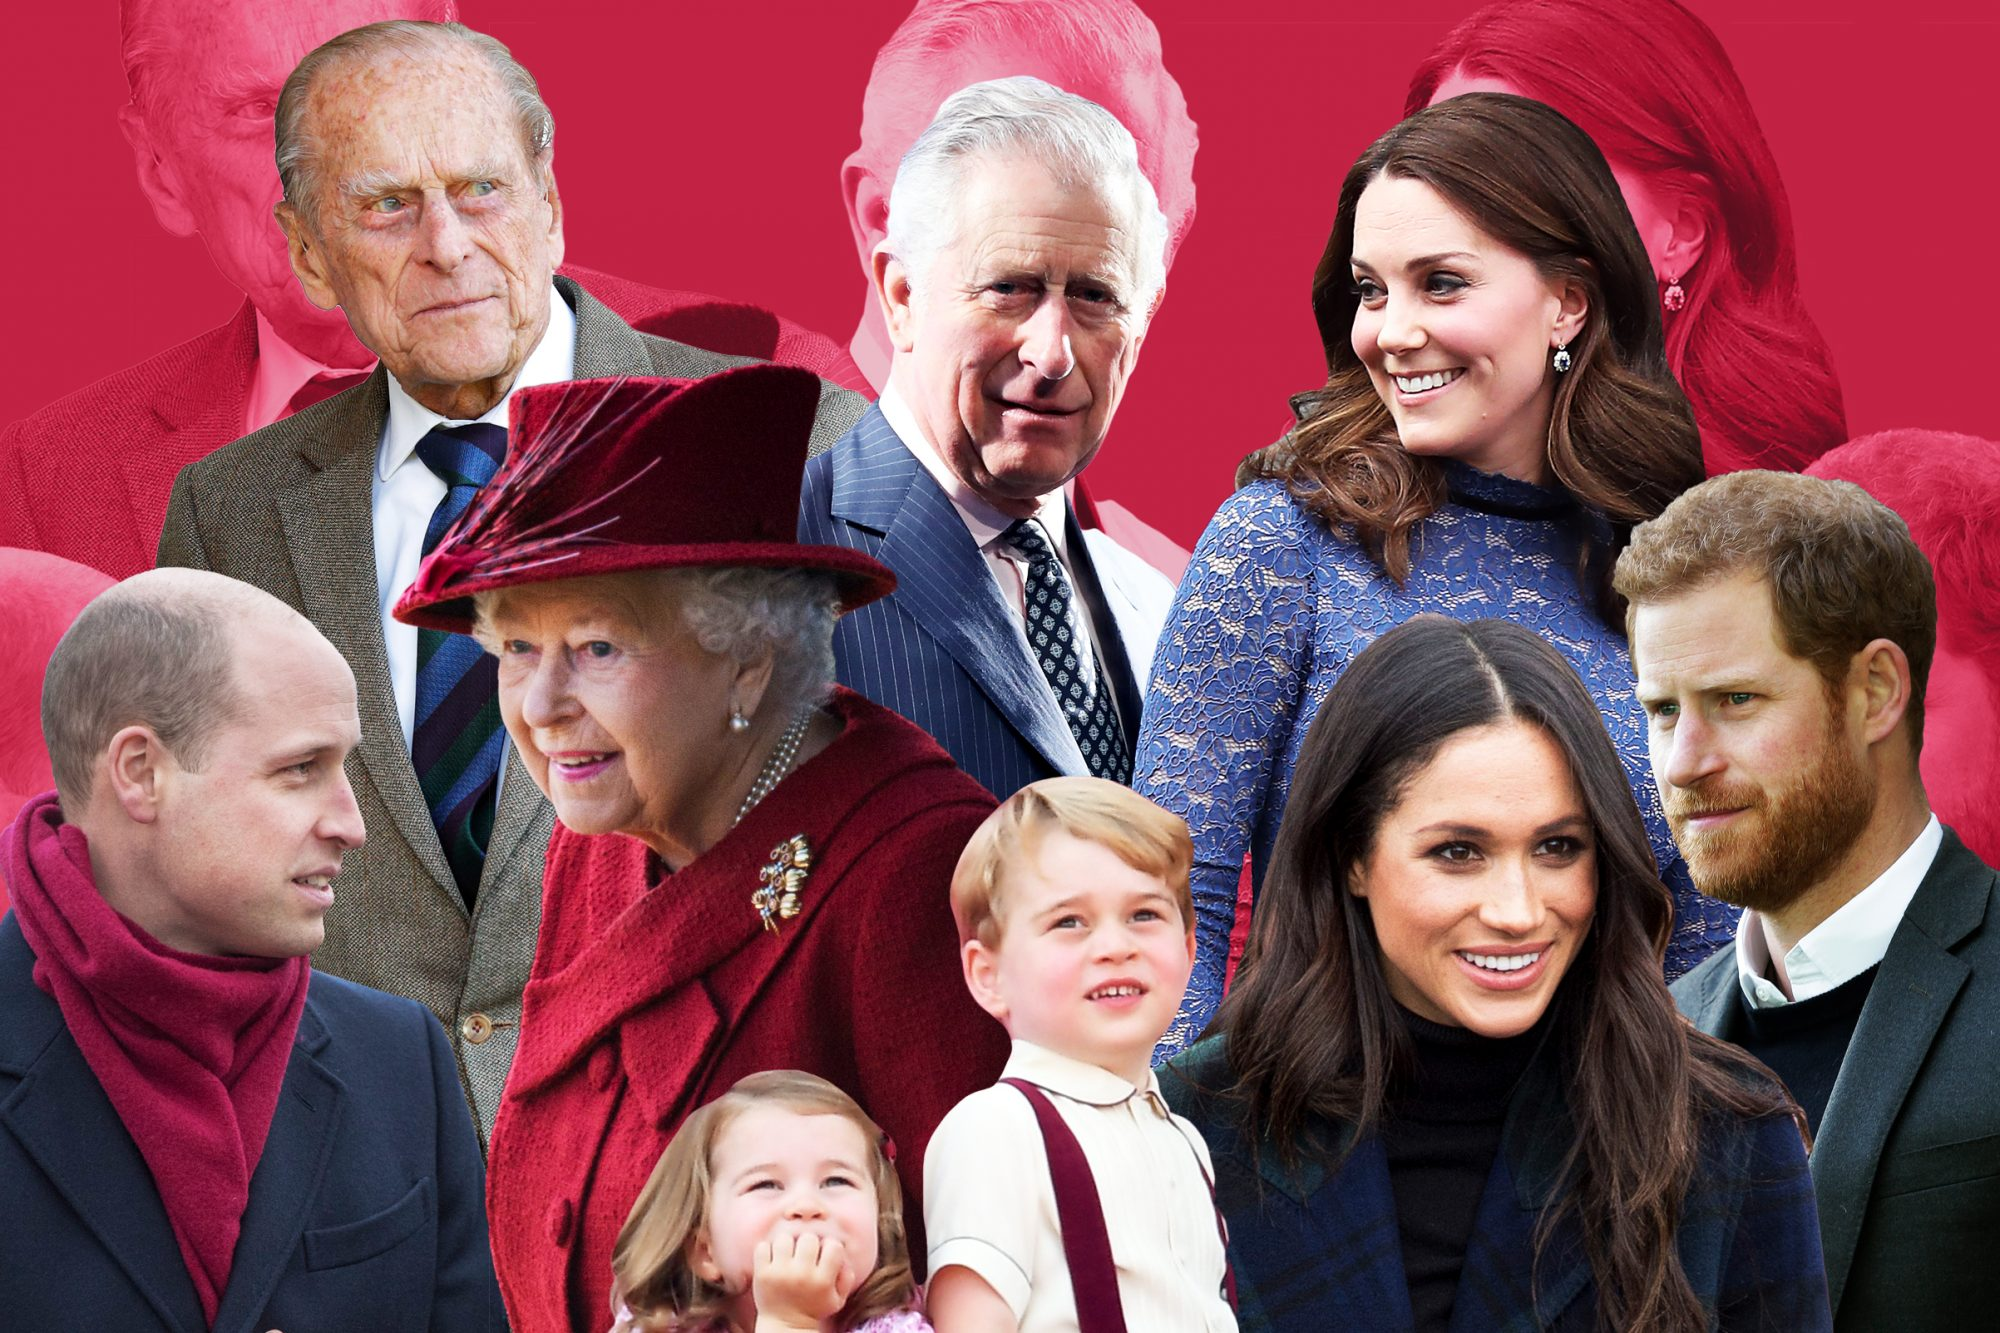 A collage of the Royal Family